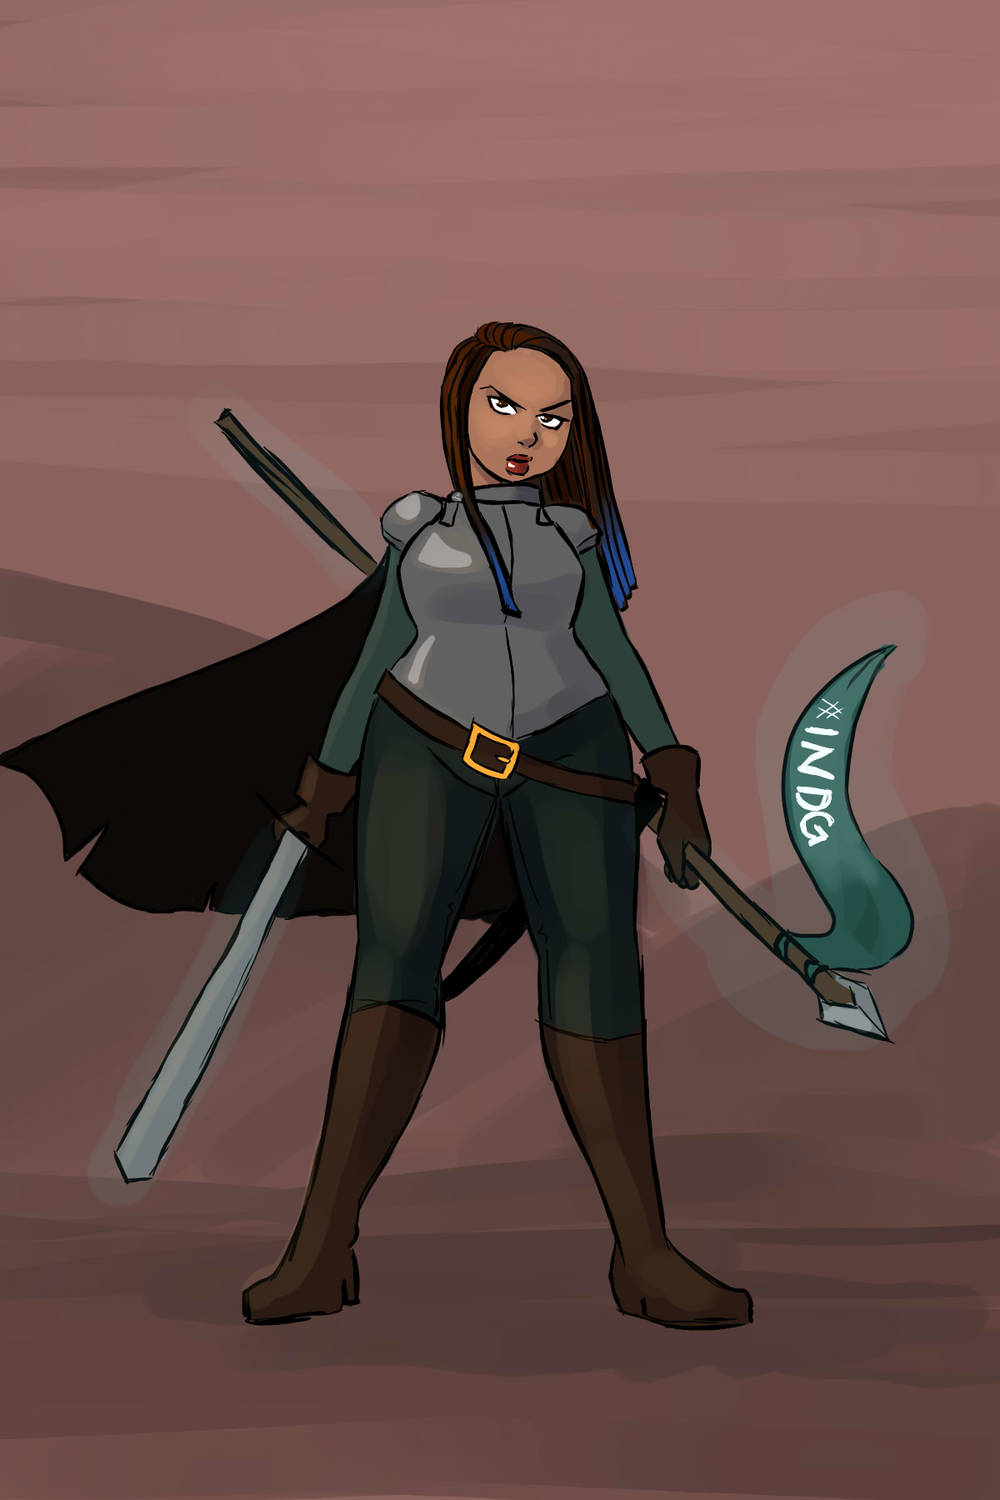 Tanya DePass as a paladin for #feministdeck and #INeedDiverseGames